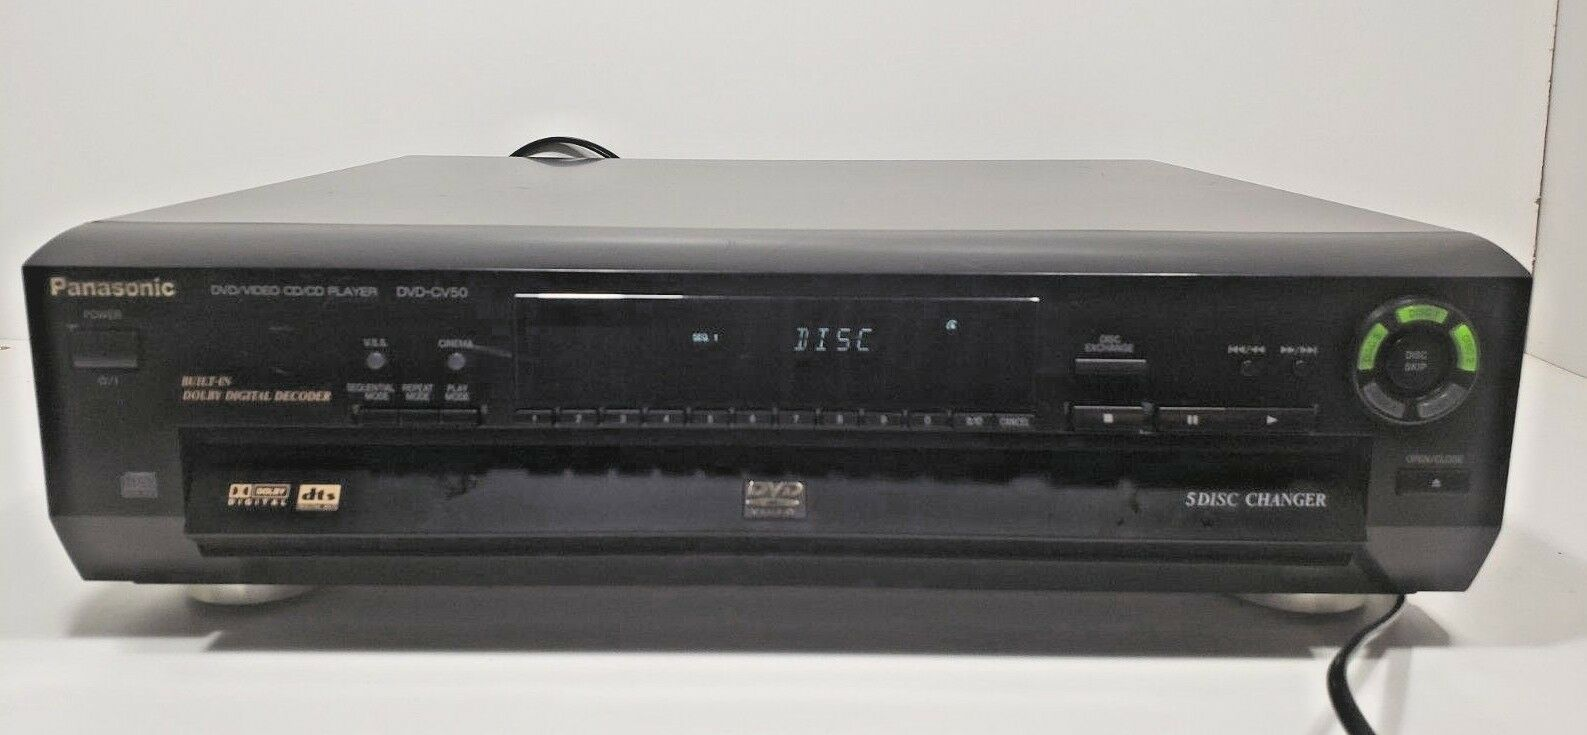 Panasonic DVD-CV50 DVD Video  CD/CD Player 5 Disc Changer..Tested W/Remote